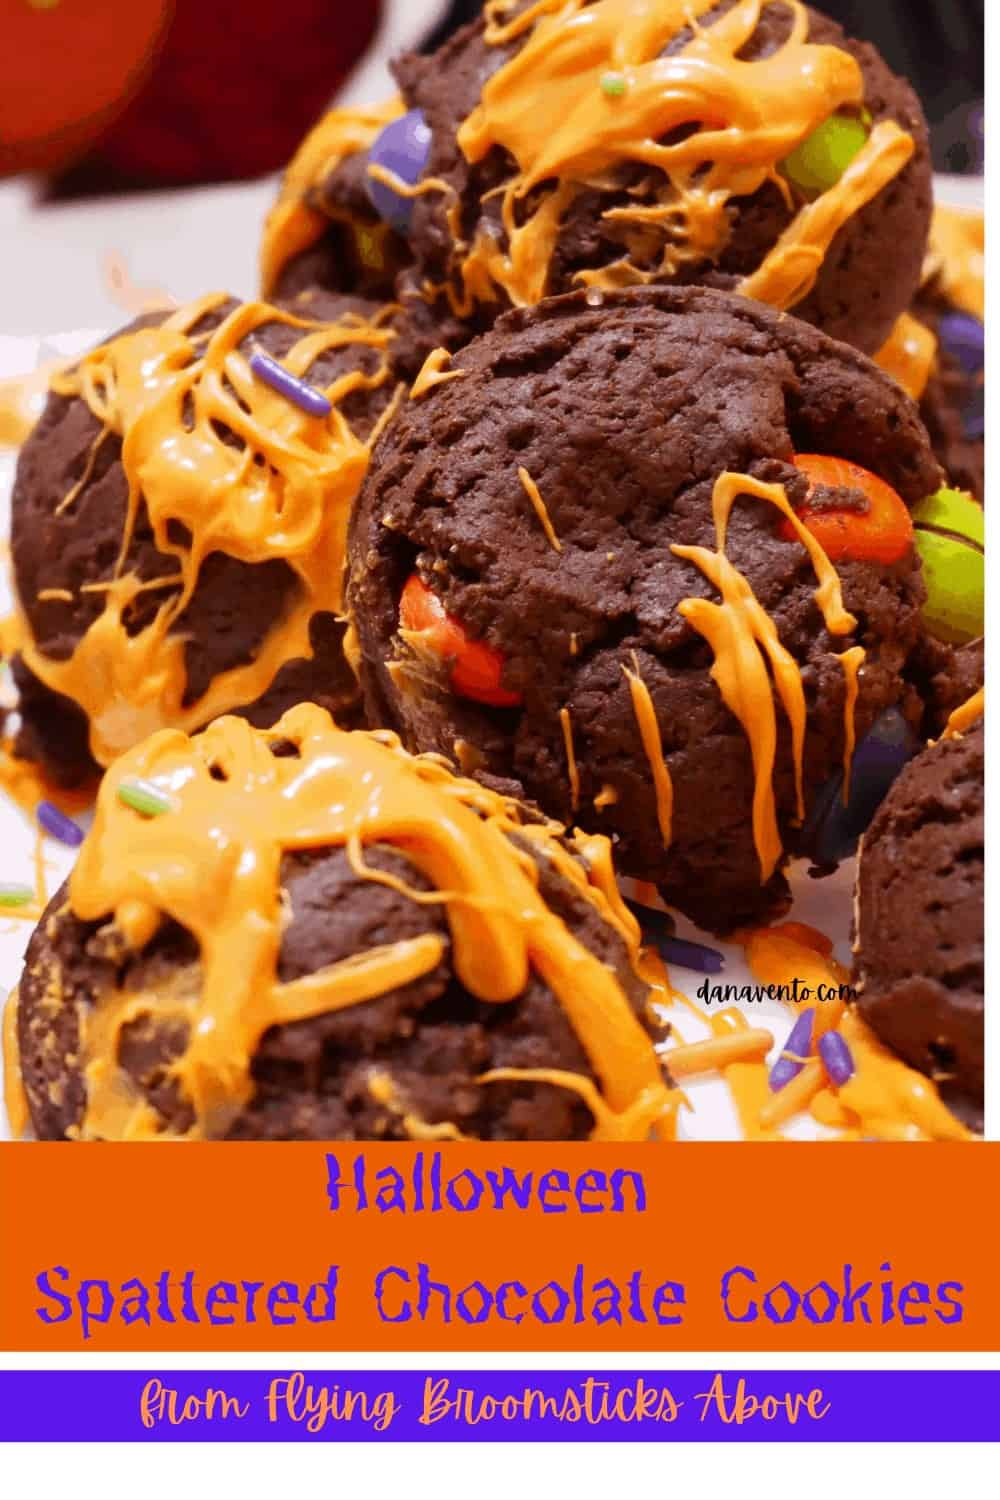 Chocolate witch cookie bombs up close with orange chocolate spatter.